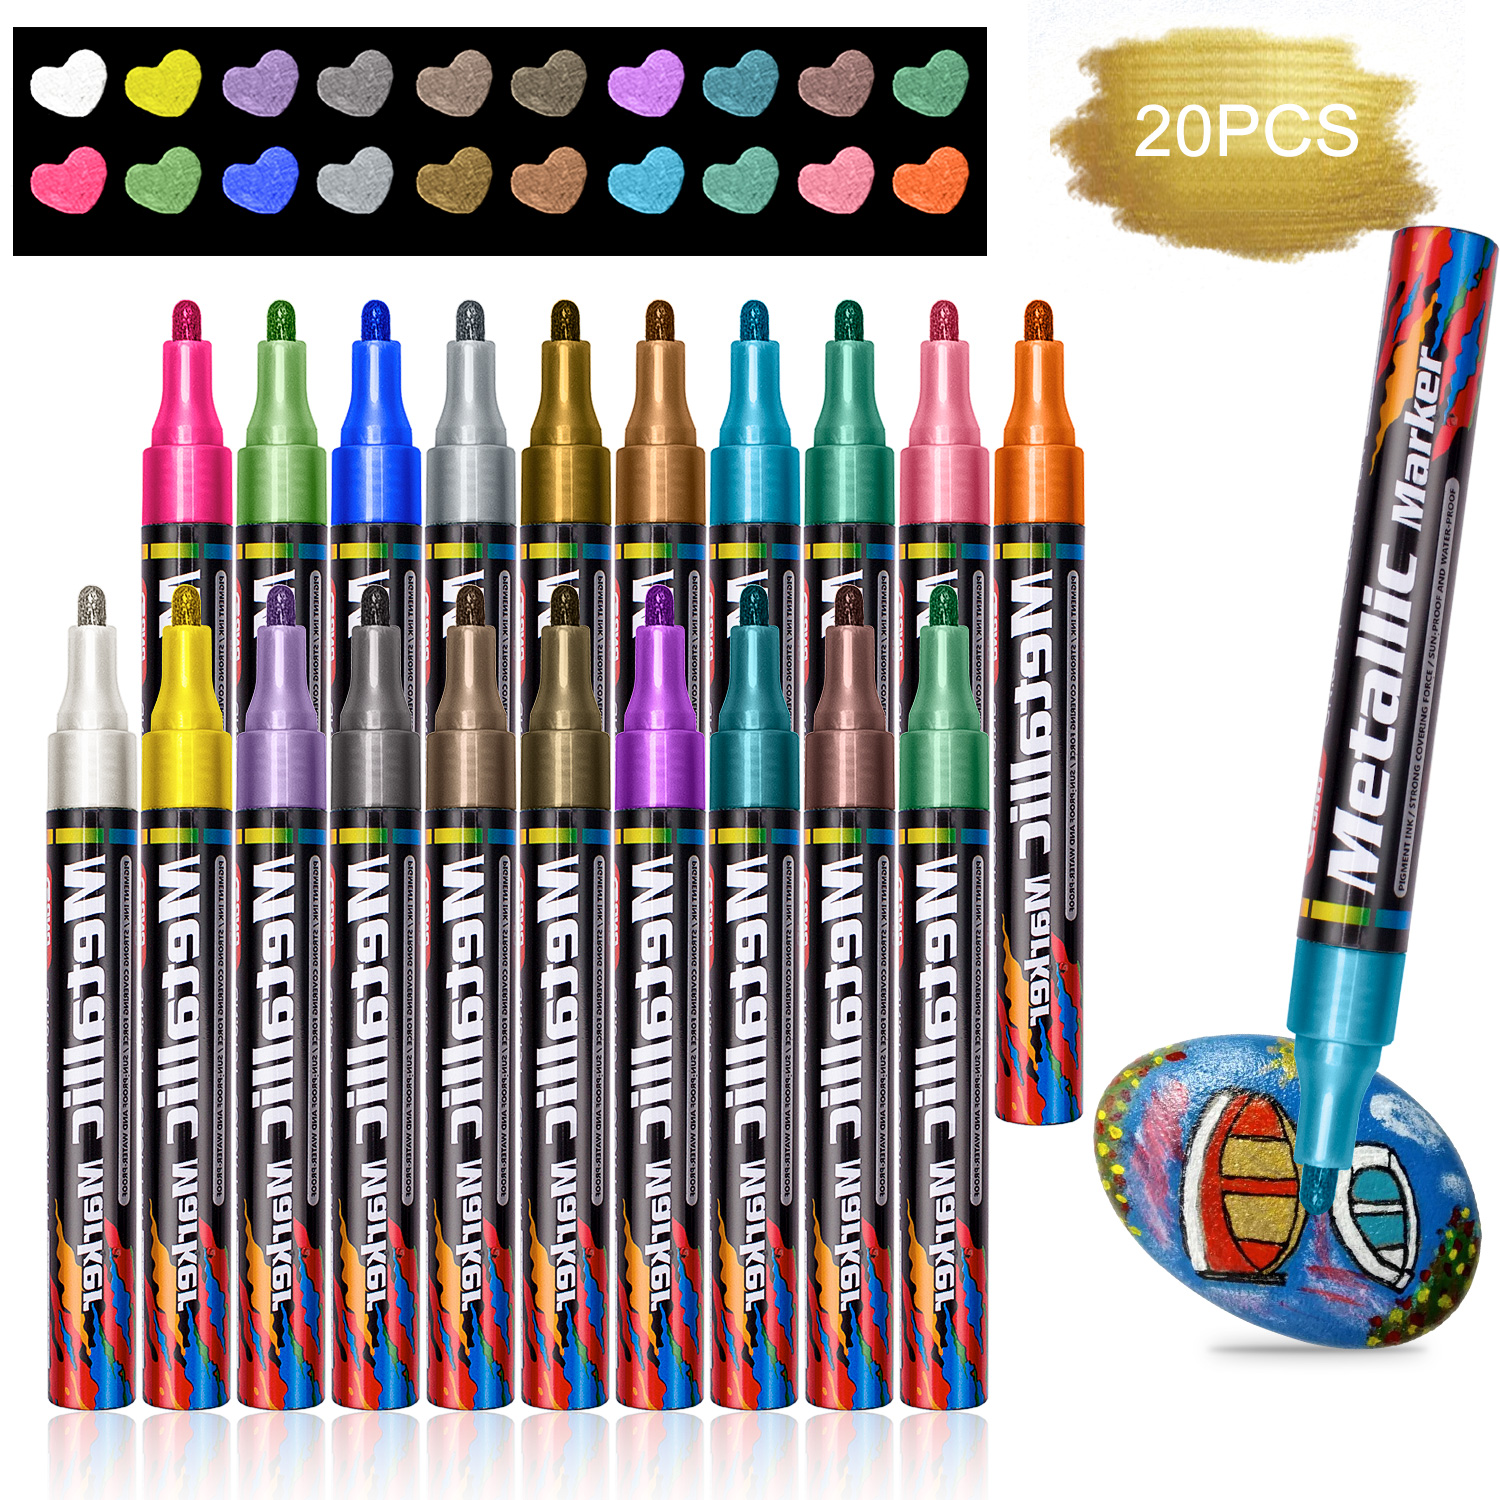 Metalic Marker Pens Waterproof Permanent DIY Non-Toxic Marker Pens 20 Colors Graffiti Stationery Color Pen Back TO School